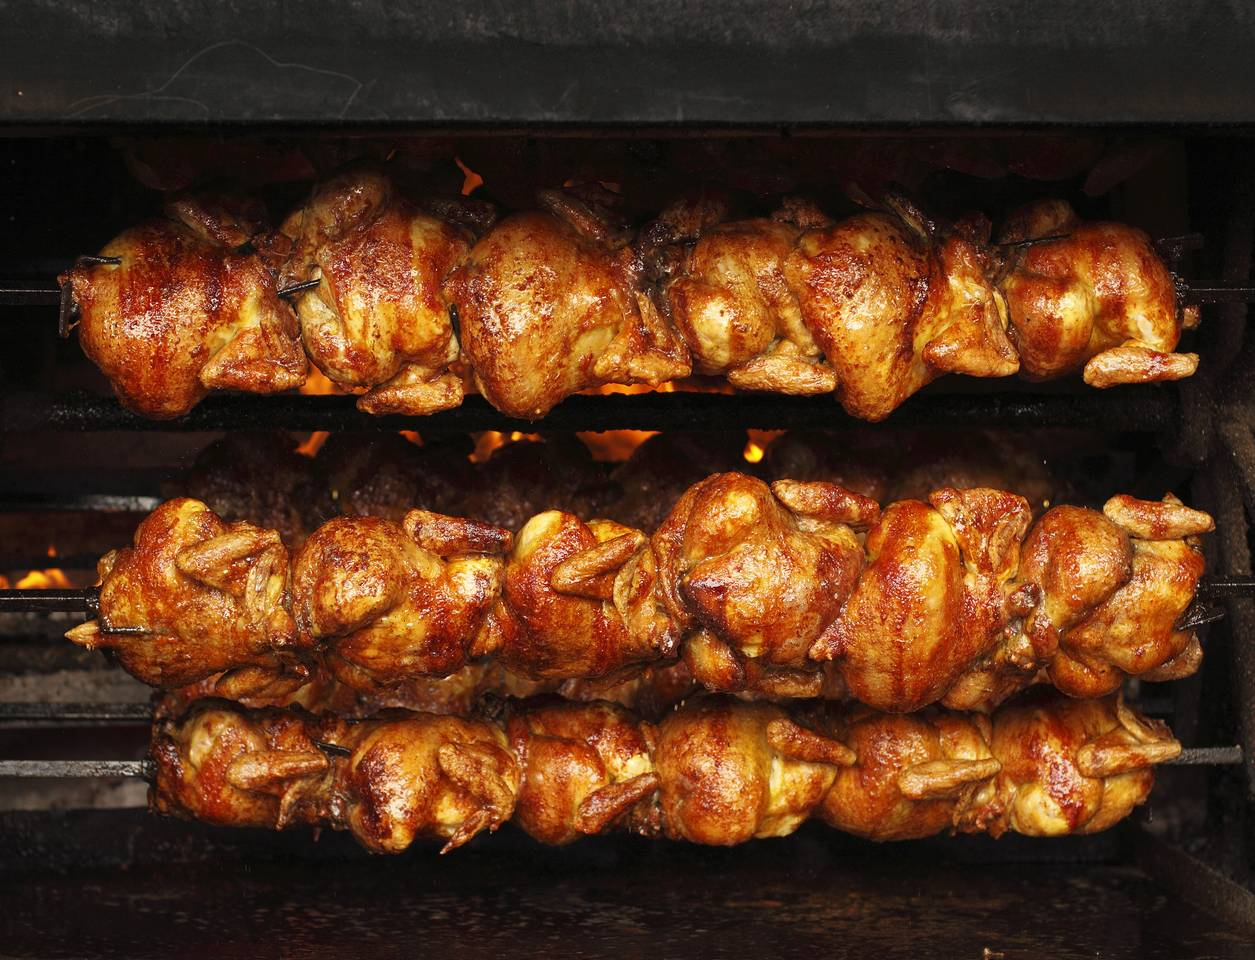 Rotisserie chicken: The grab-and-go market is still going strong